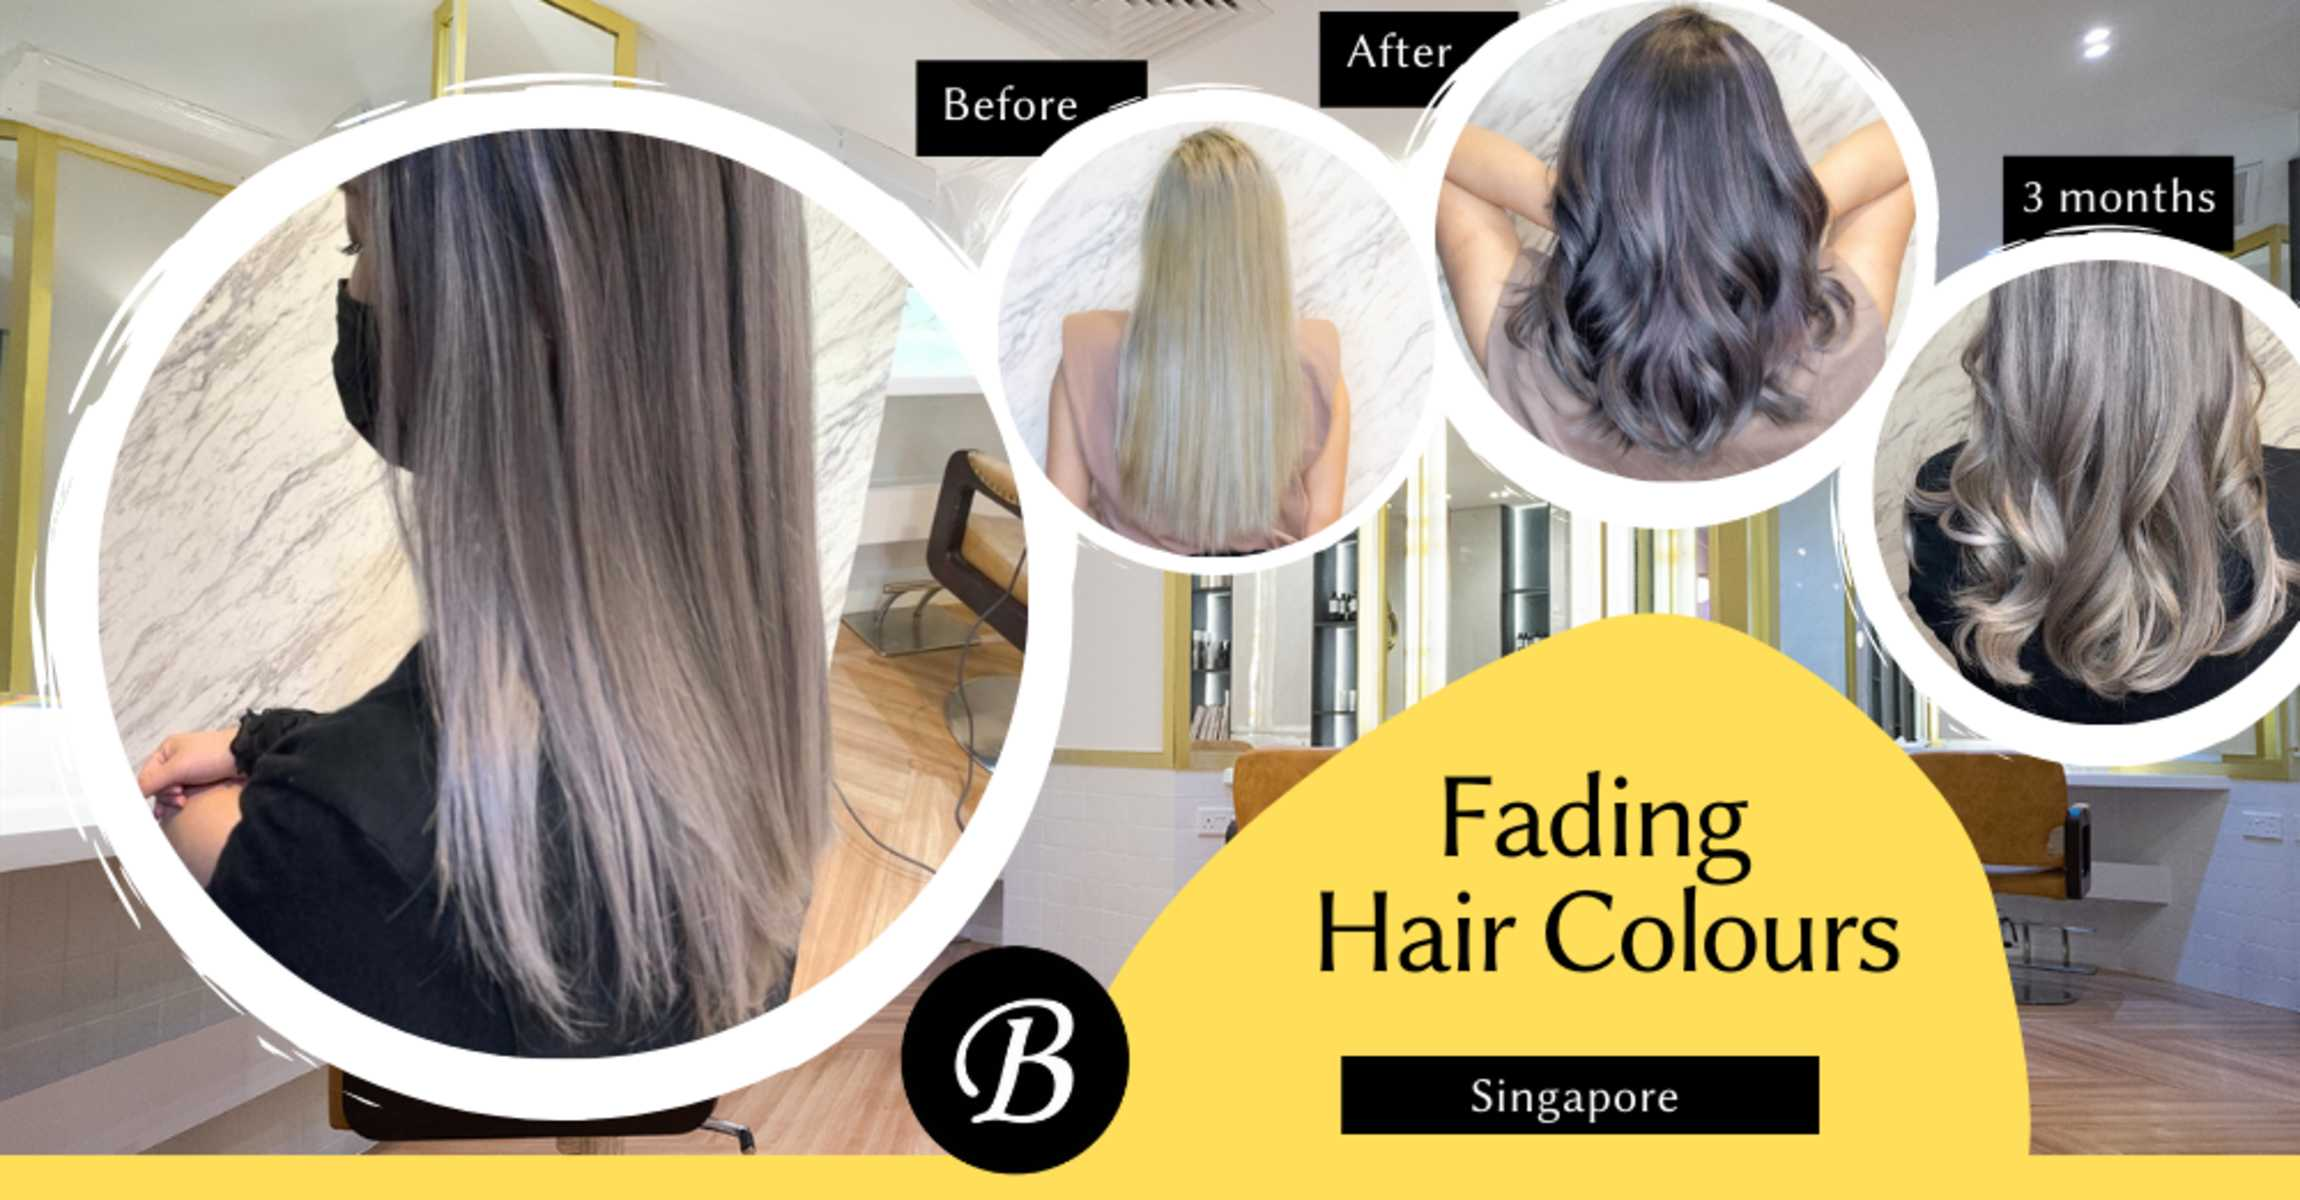 Fading Hair Colours and This Stylist's Secret to Make Them Look Good